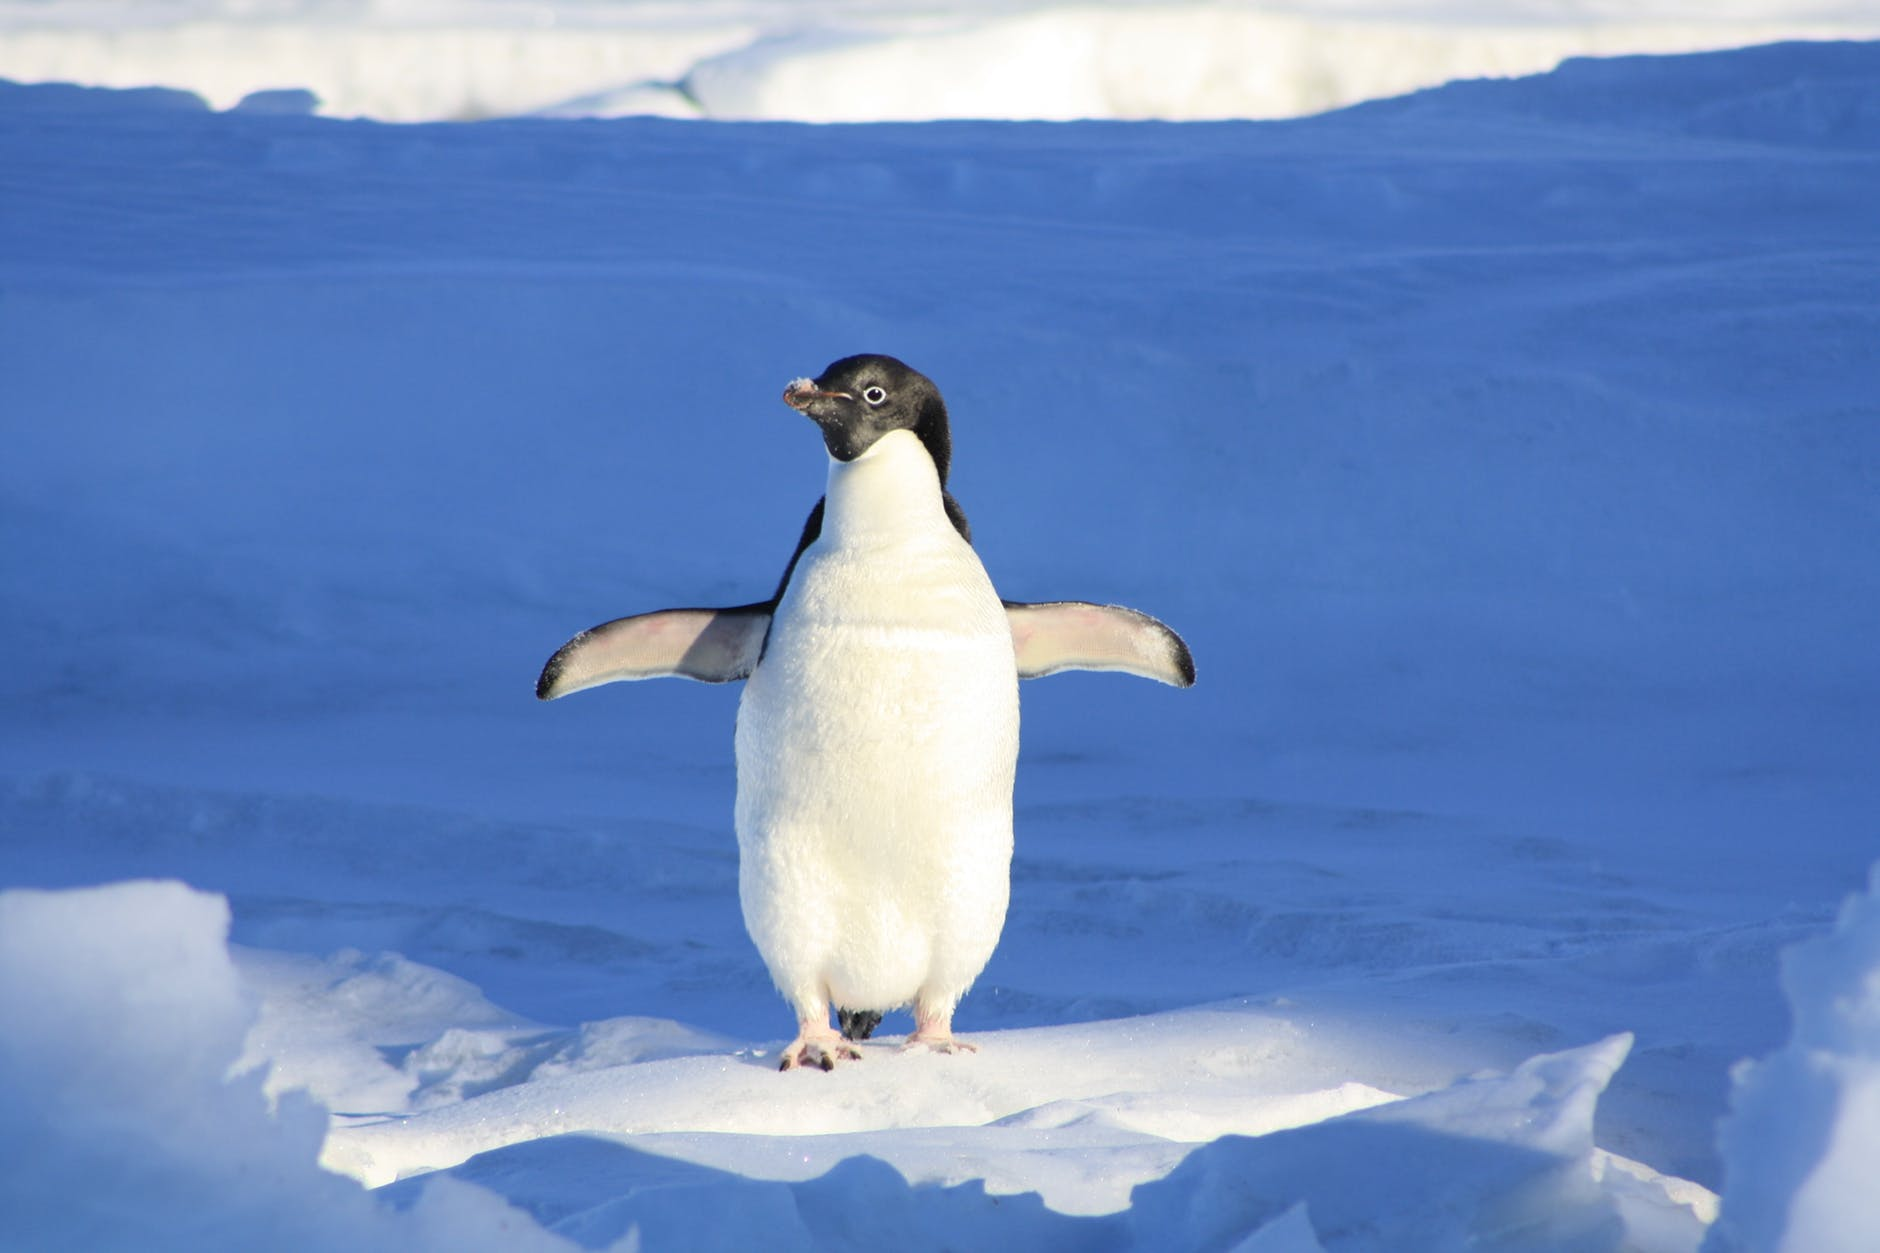 close up photography of penguin on snow